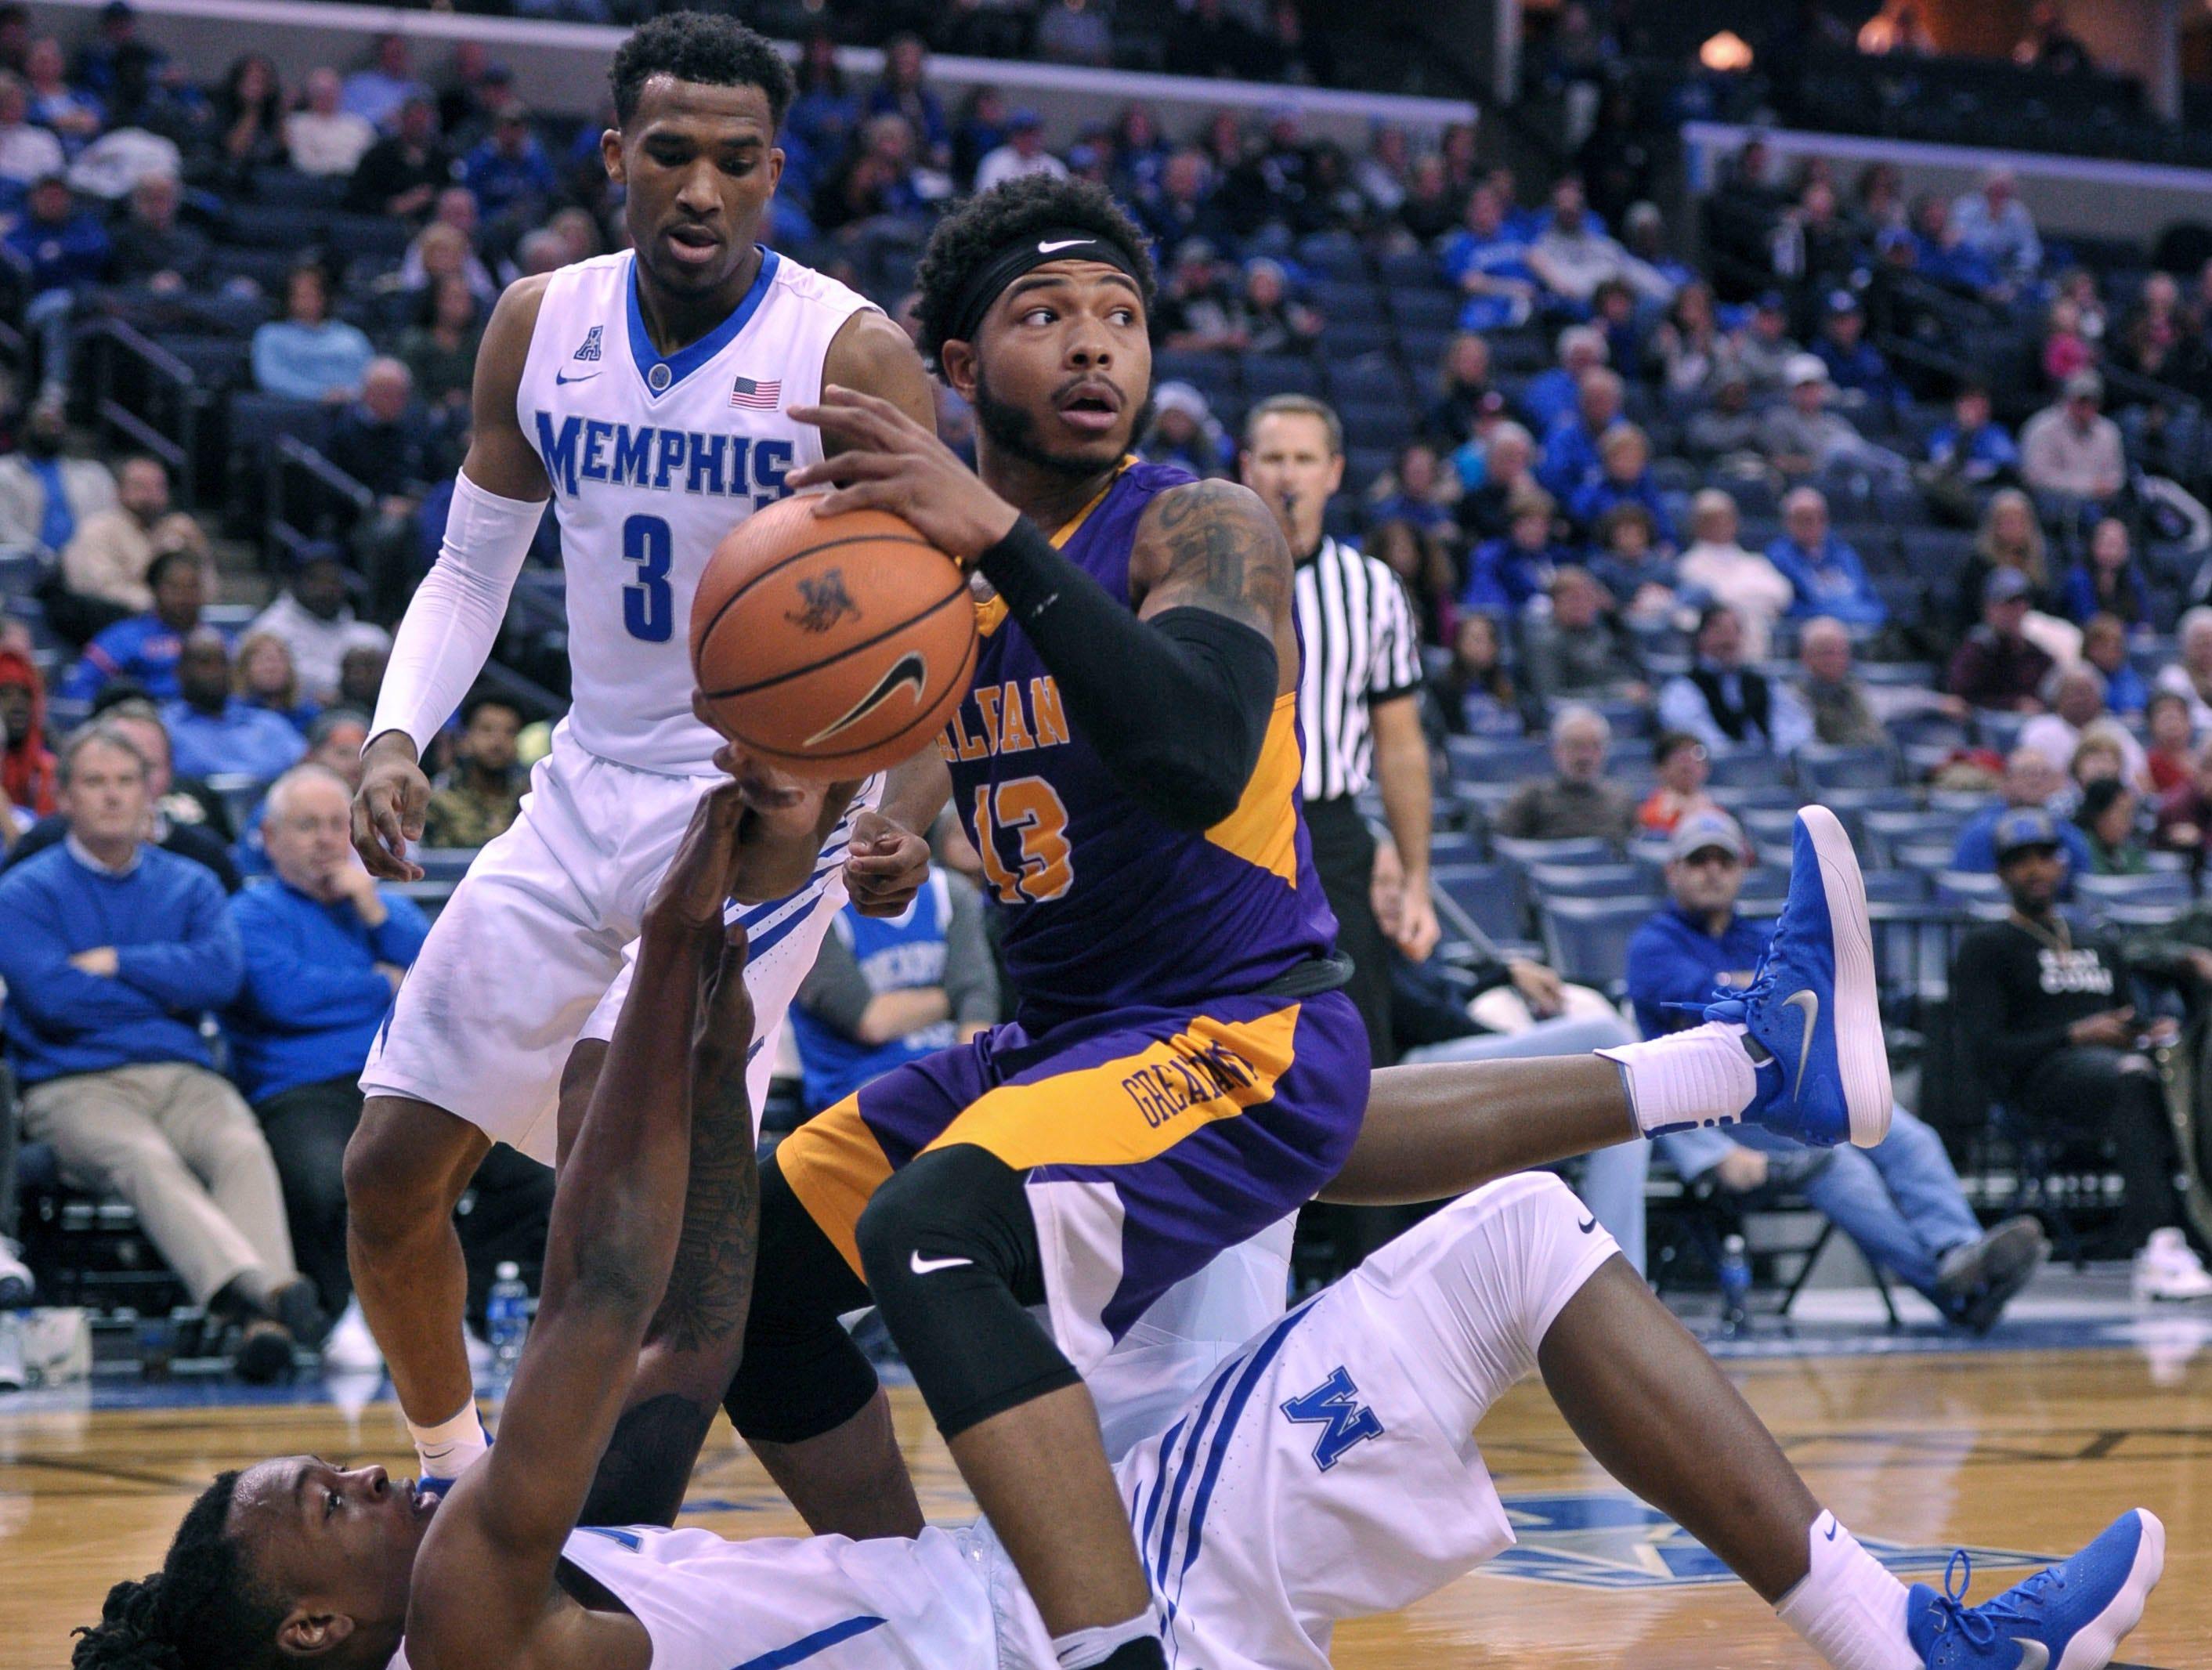 Dec 12, 2017; Memphis, TN, USA; Albany Great Danes guard David Nichols (13) and Memphis Tigers forward Kyvon Davenport (0) fight for the ball during the first half at FedExForum. Mandatory Credit: Justin Ford-USA TODAY Sports